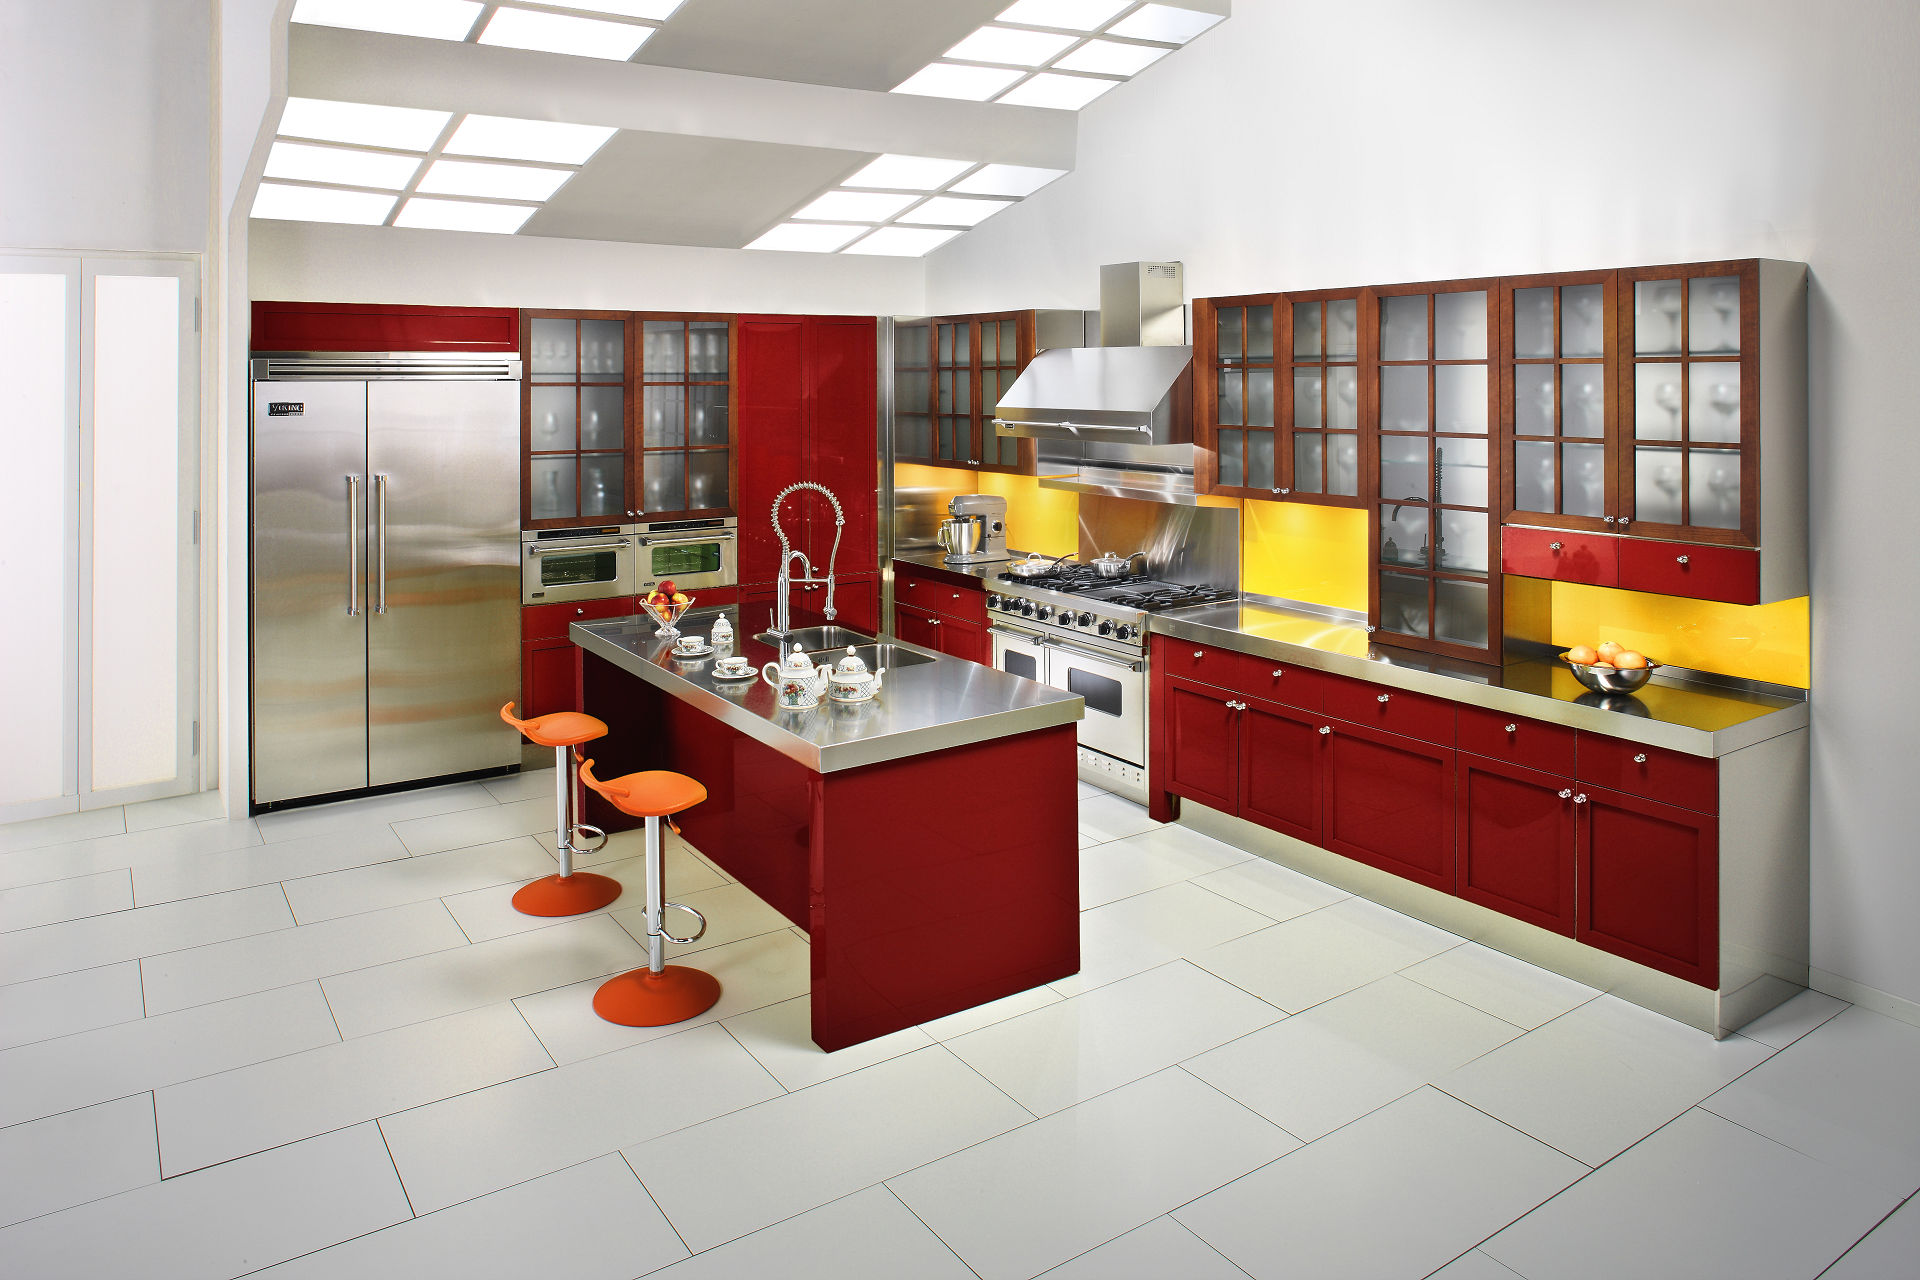 Arca Cucine Italy - Domestic stainless steel kitchens - 14 - Cambridge - Rossa